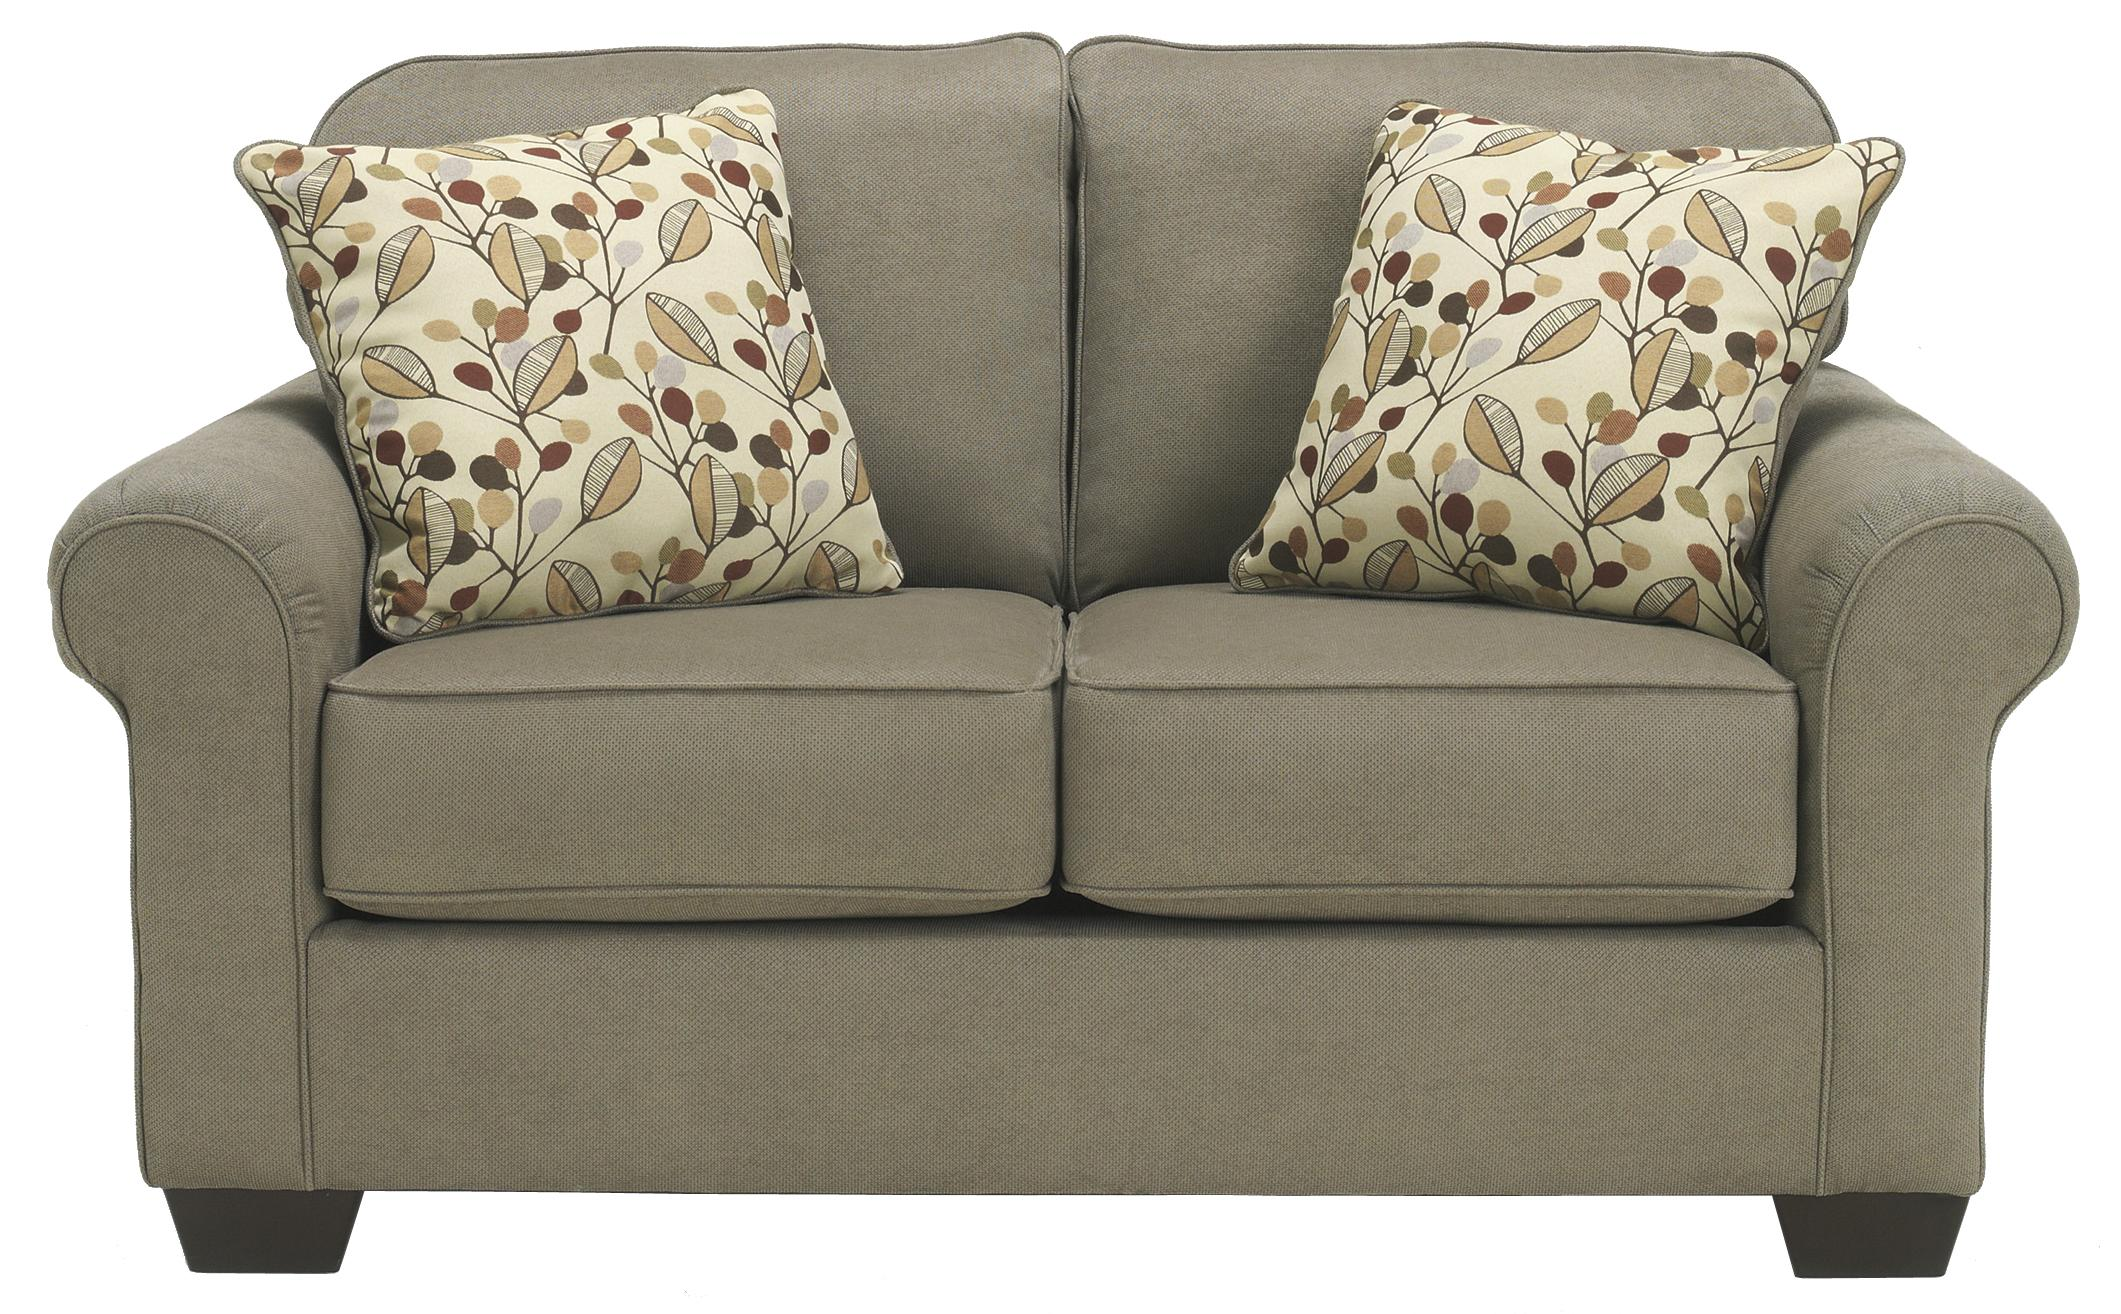 Benchcraft Danely - Dusk Loveseat - Item Number: 3550035